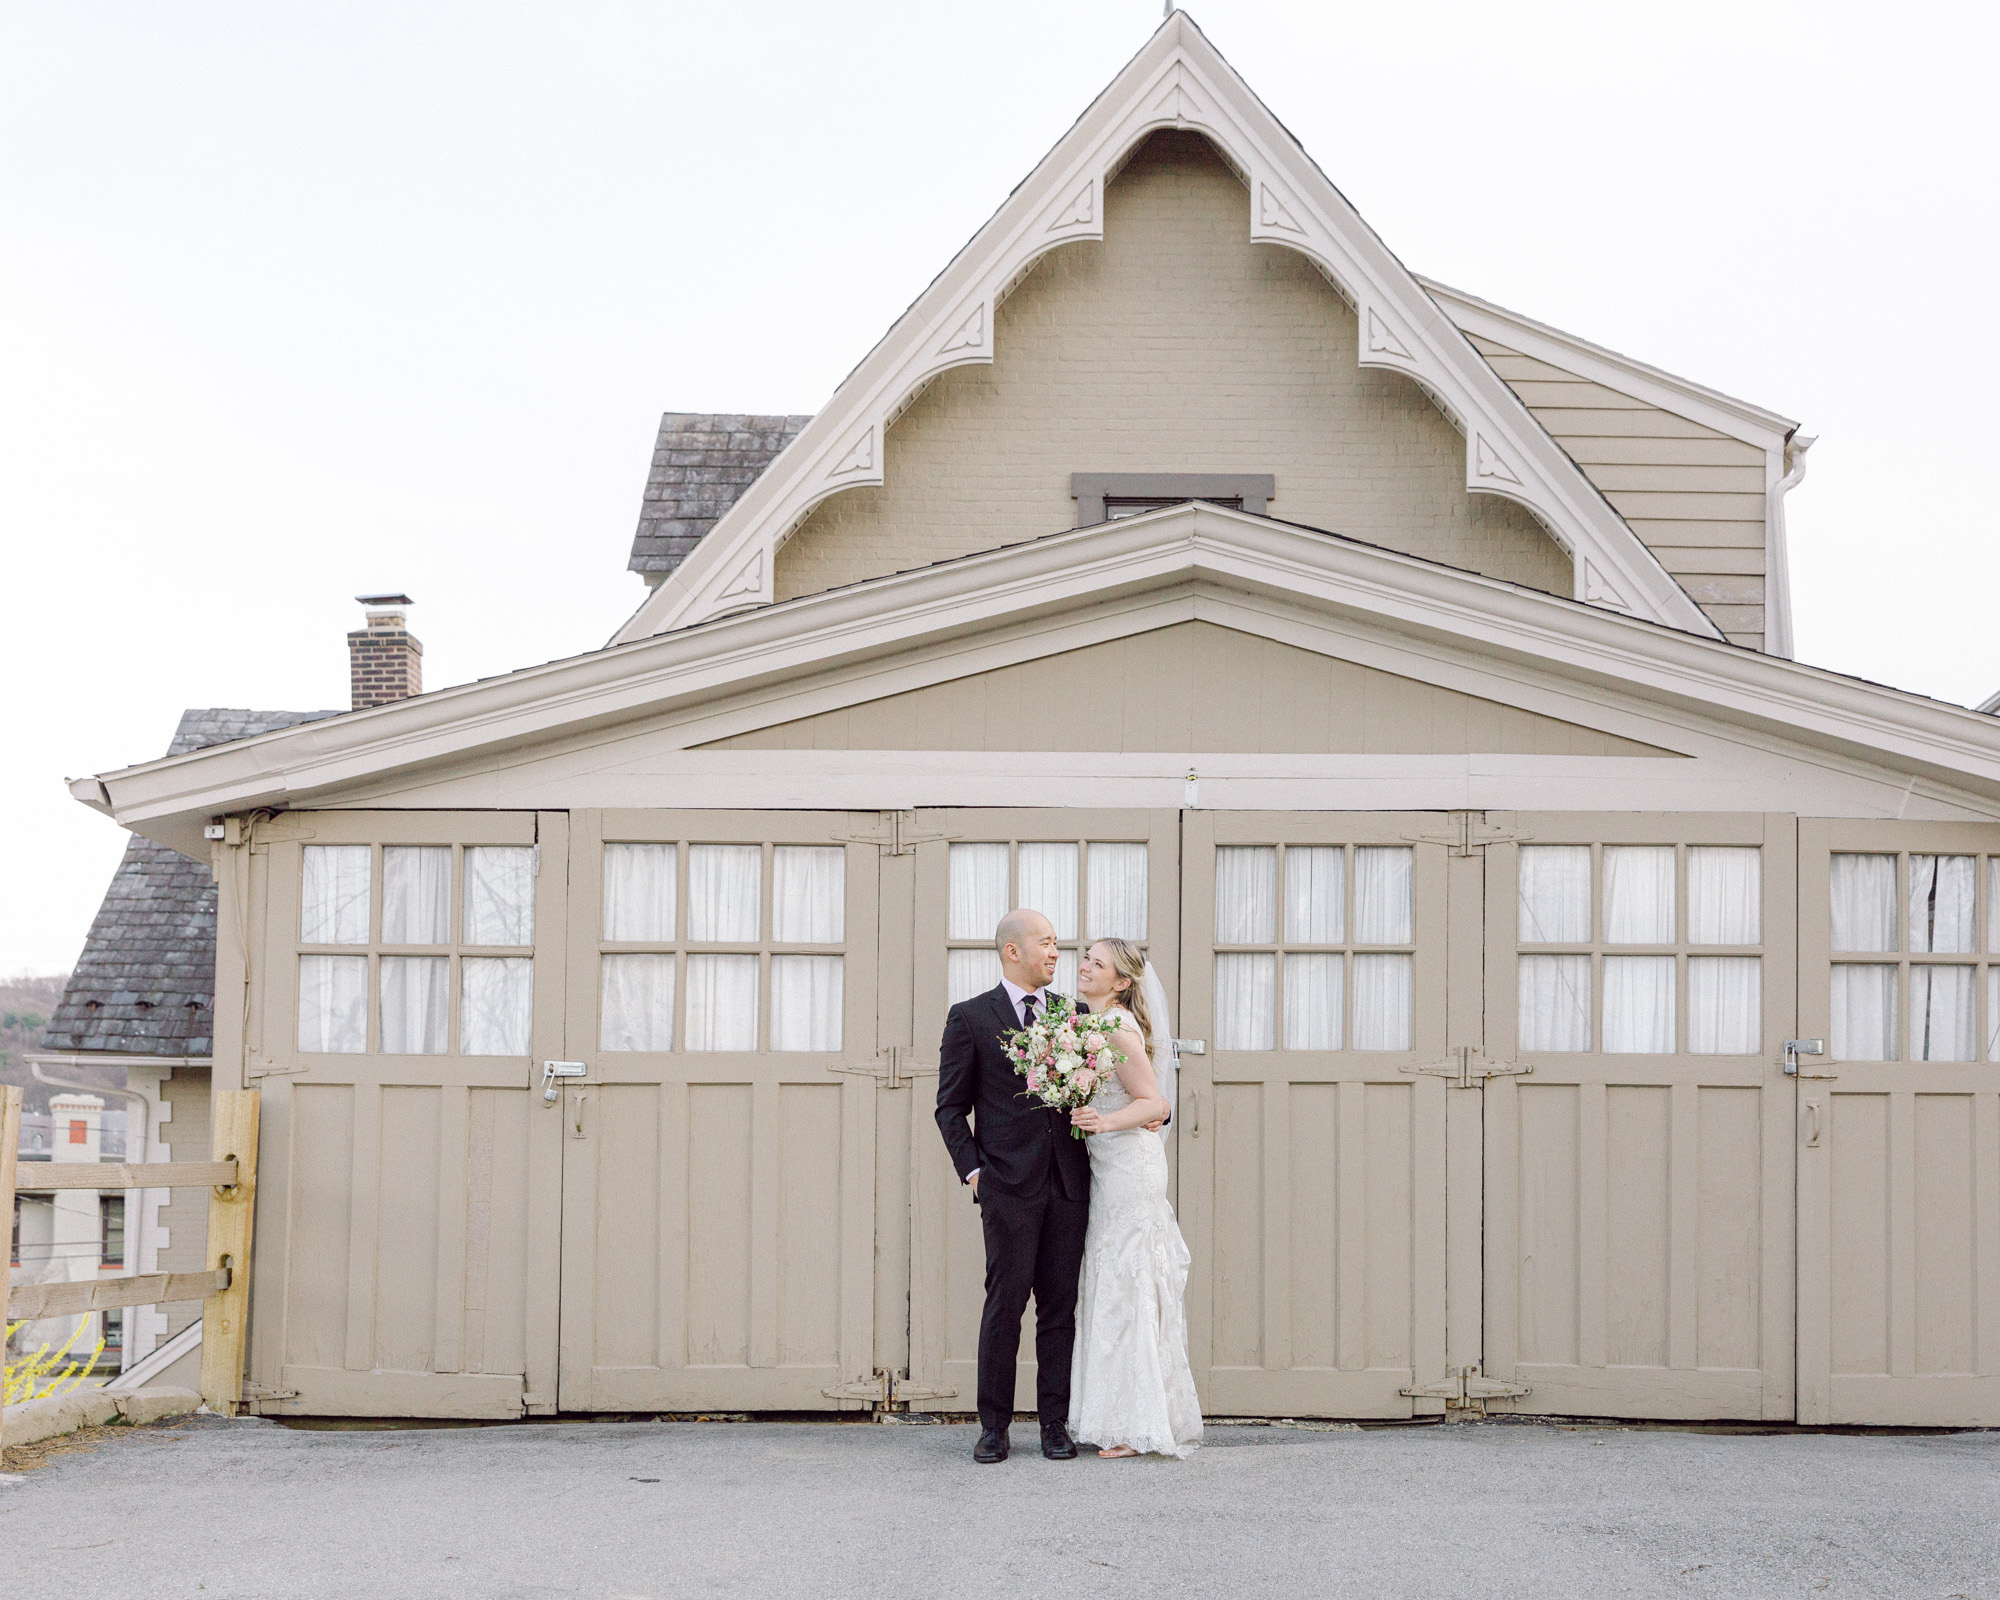 Elegant bride and groom enjoy a moment together in front of an ornate vintage carriage barn at the Sayre Mansion in Bethlehem, PA by Laura Billingham Photography